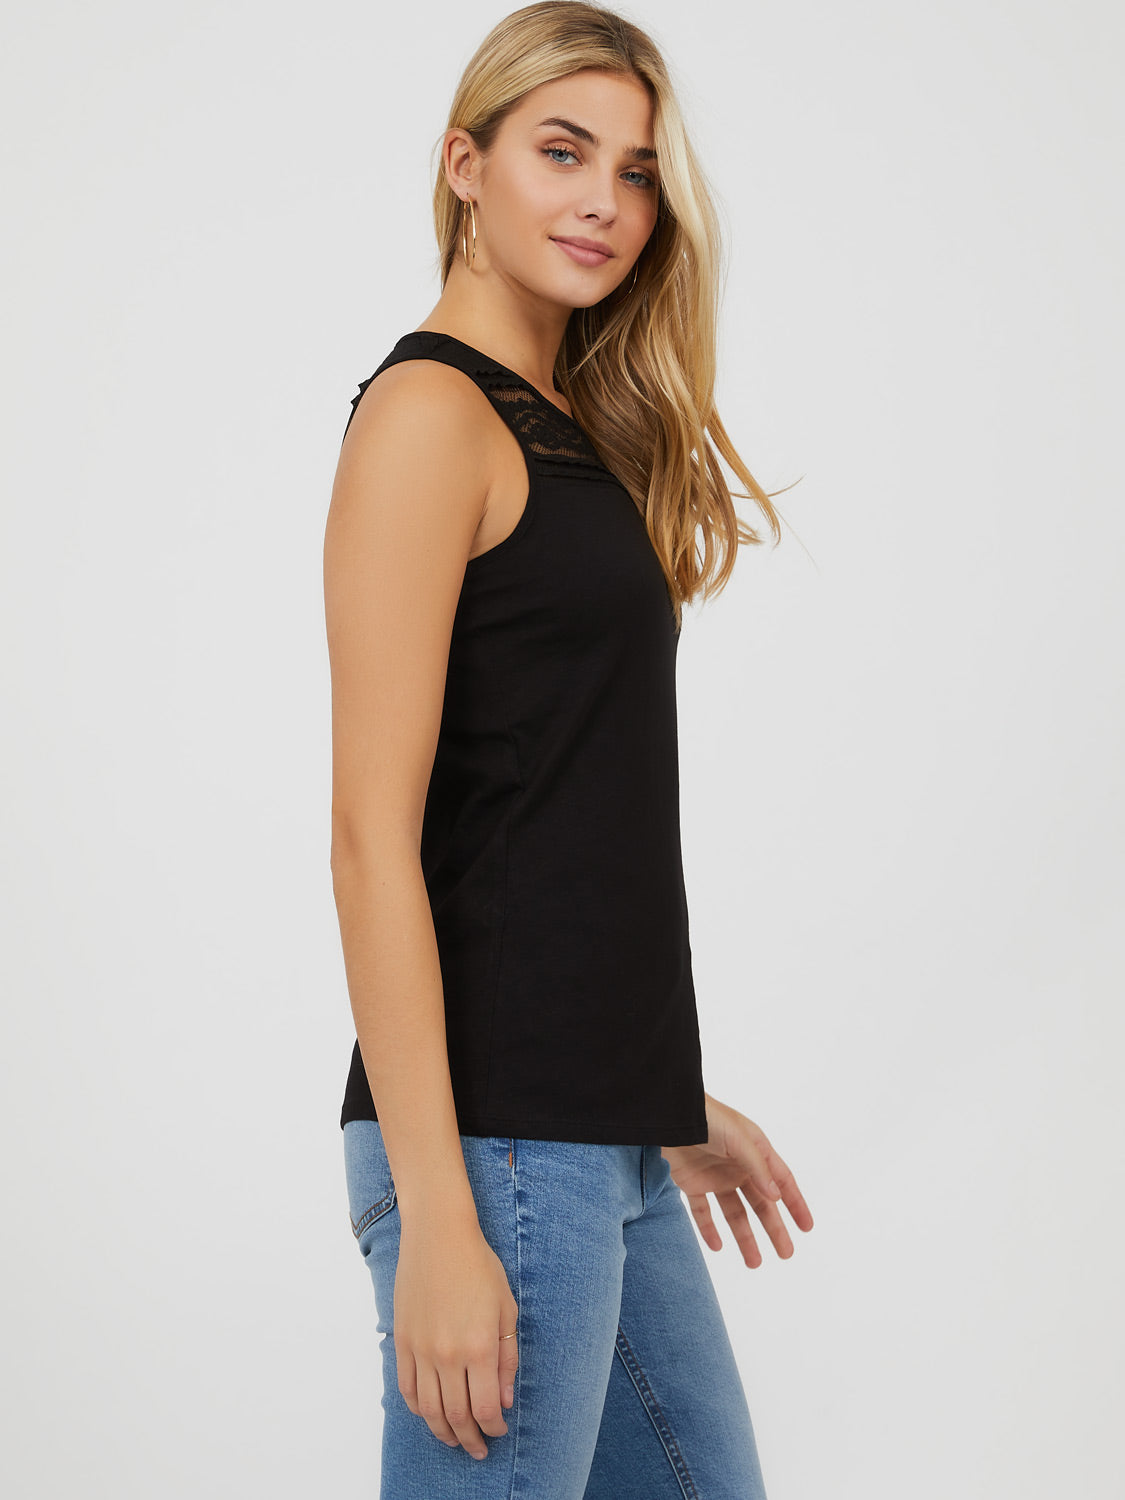 Sleeveless Lace Racer Back Cotton Knit Top